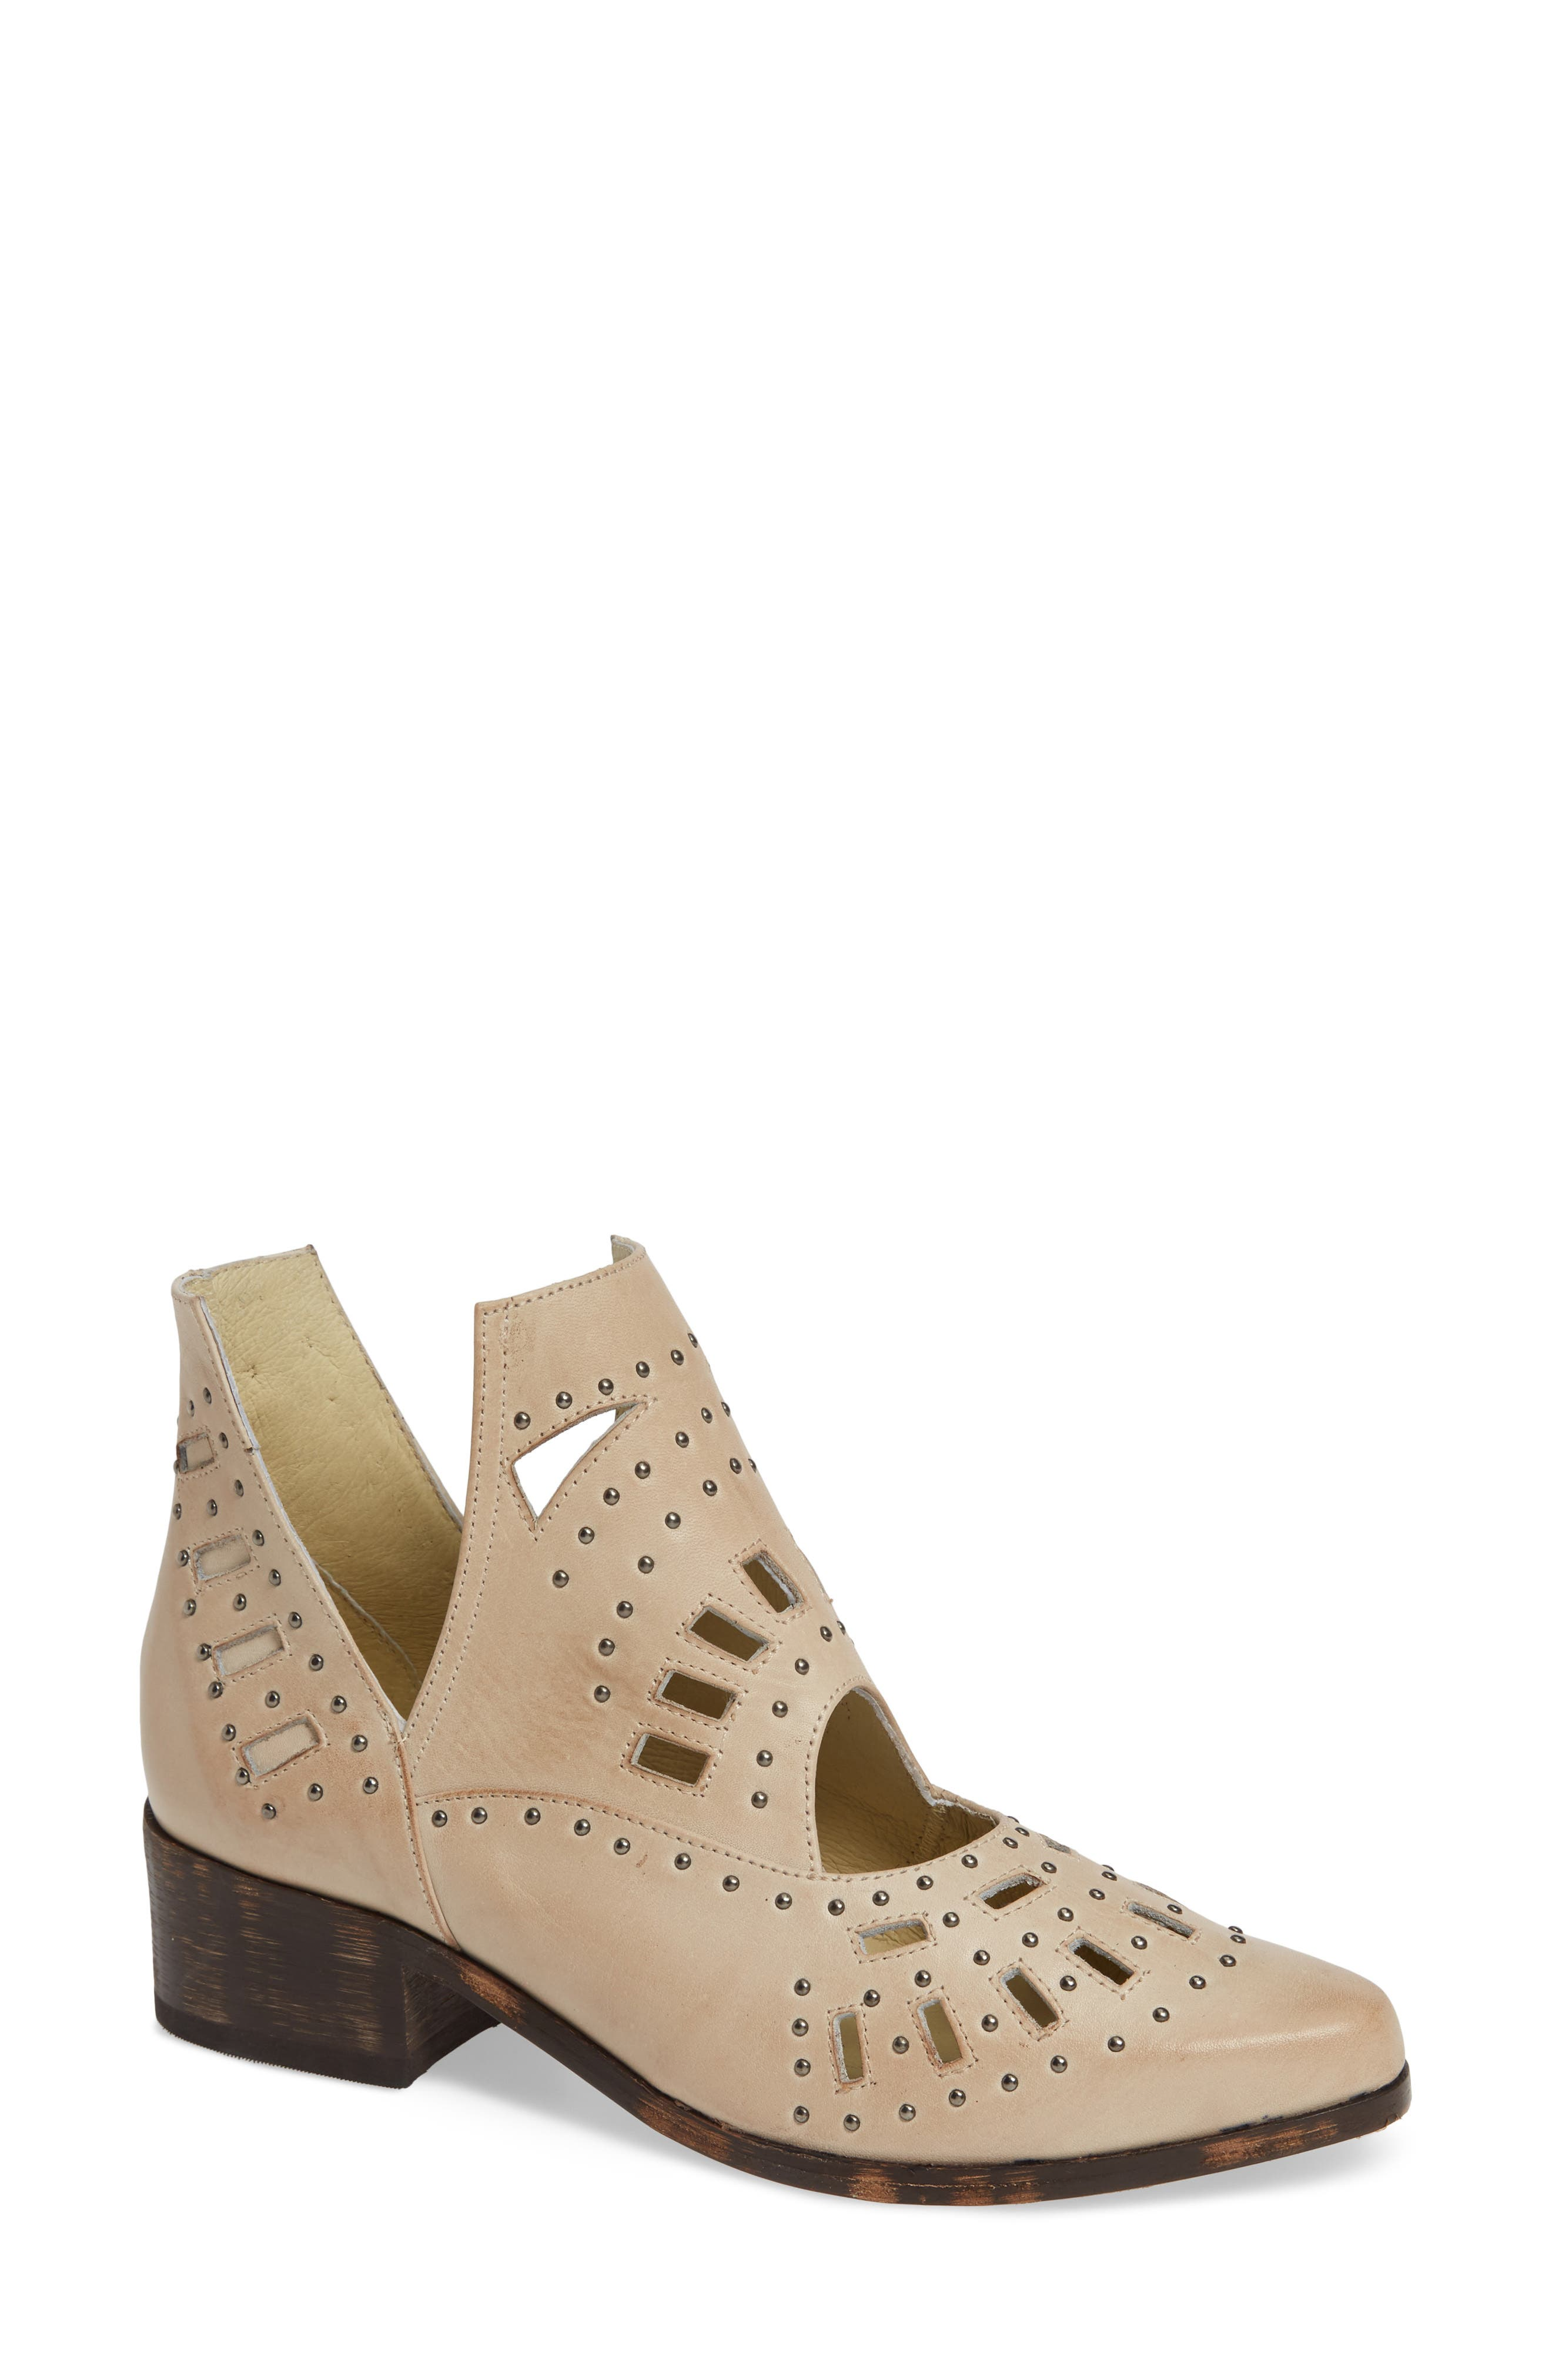 Devlyn Bootie,                         Main,                         color, WHITE LEATHER